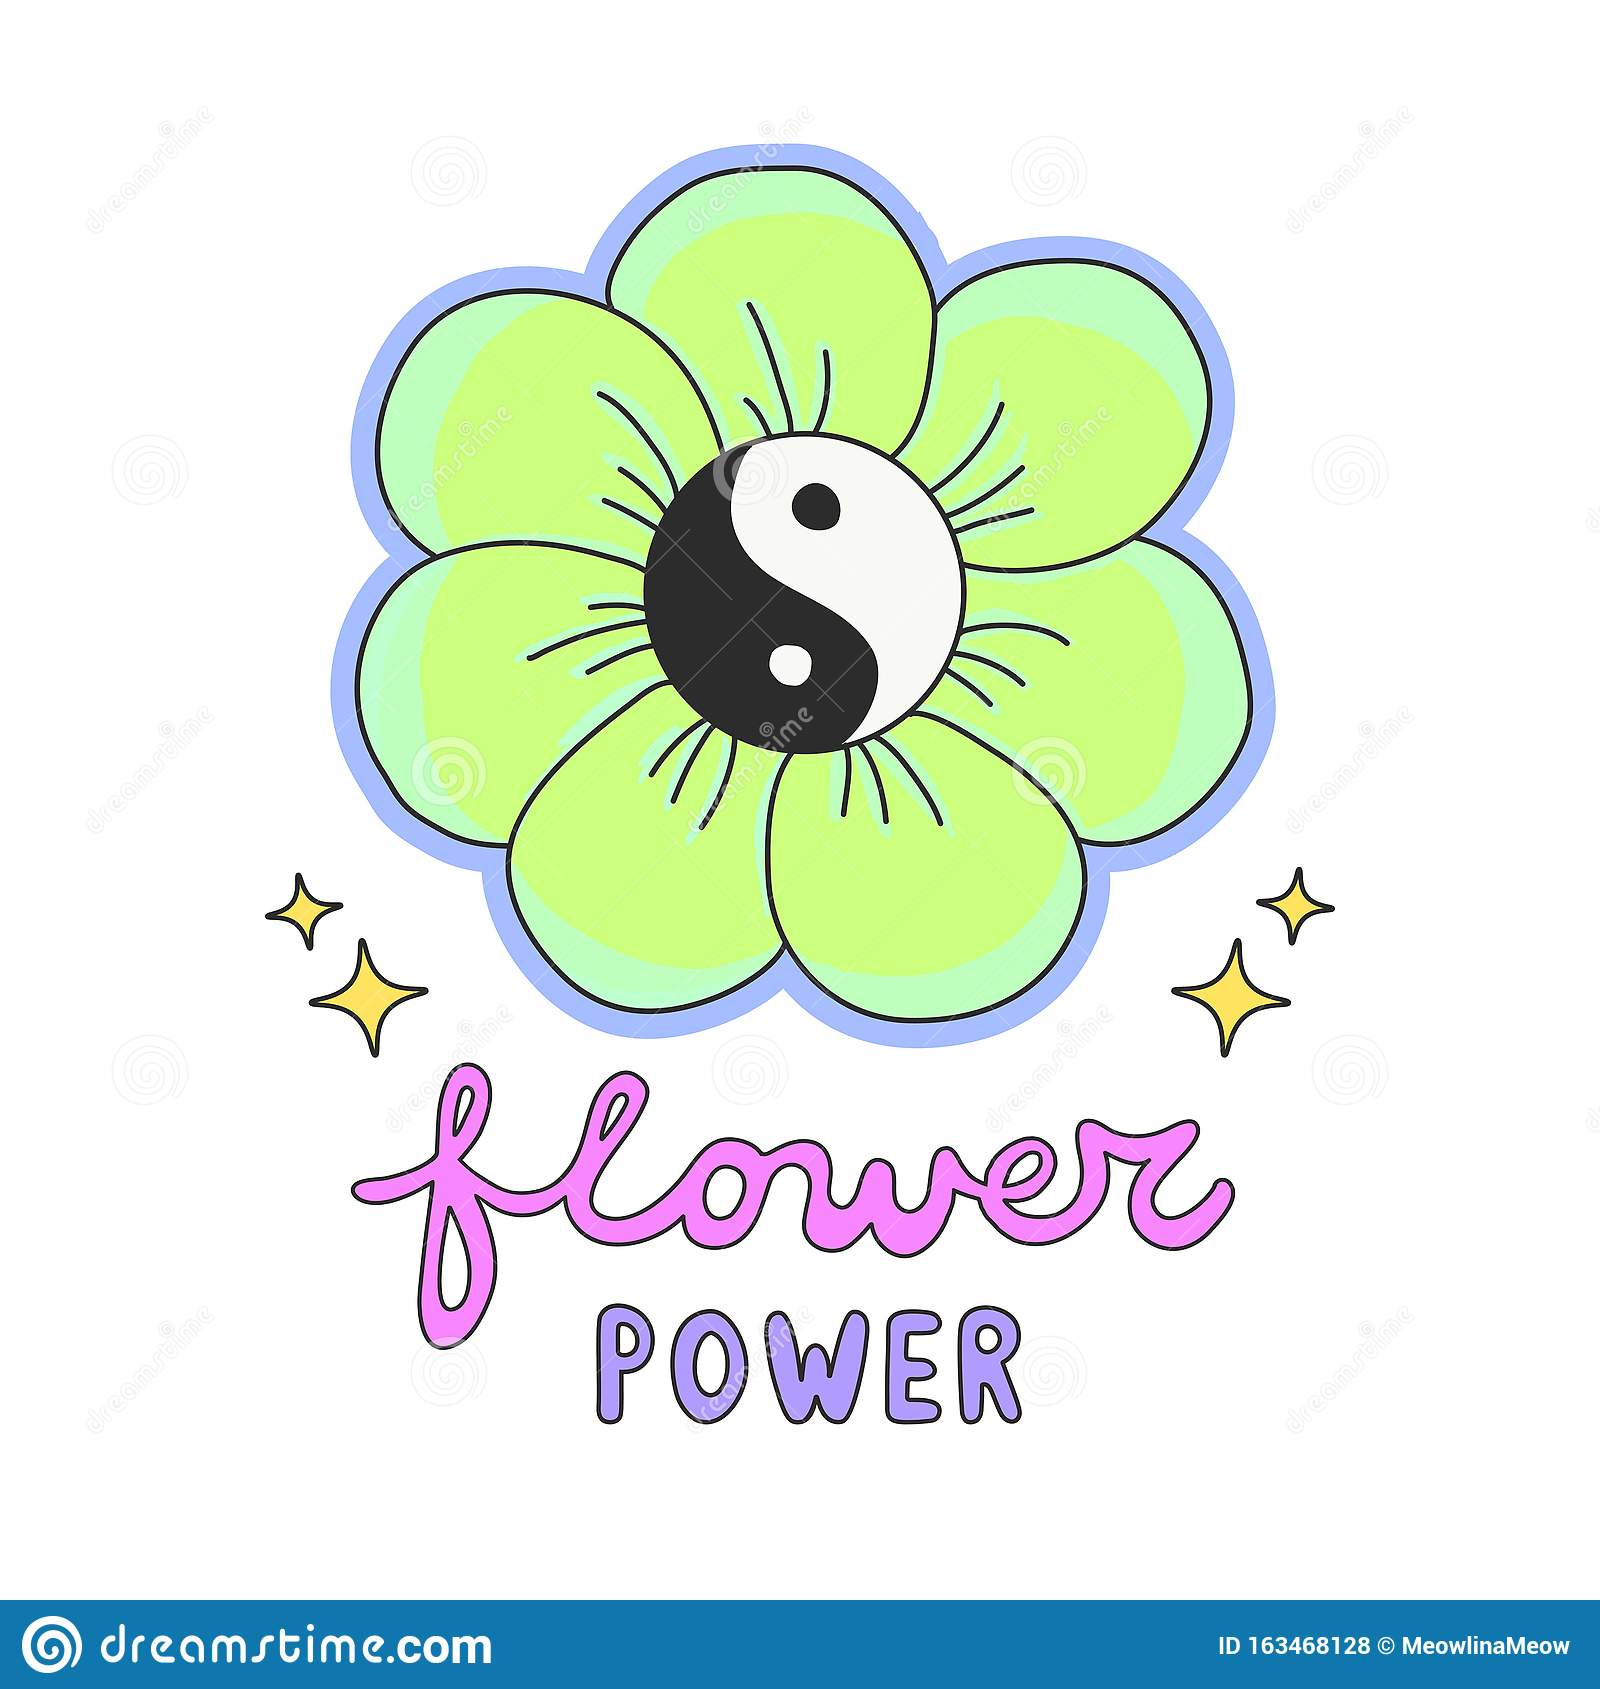 Colorful Flower Power Lettering With 60s Hippie Style Ying Yang Daisy Flower Stock Vector Illustration Of Summer Power 163468128